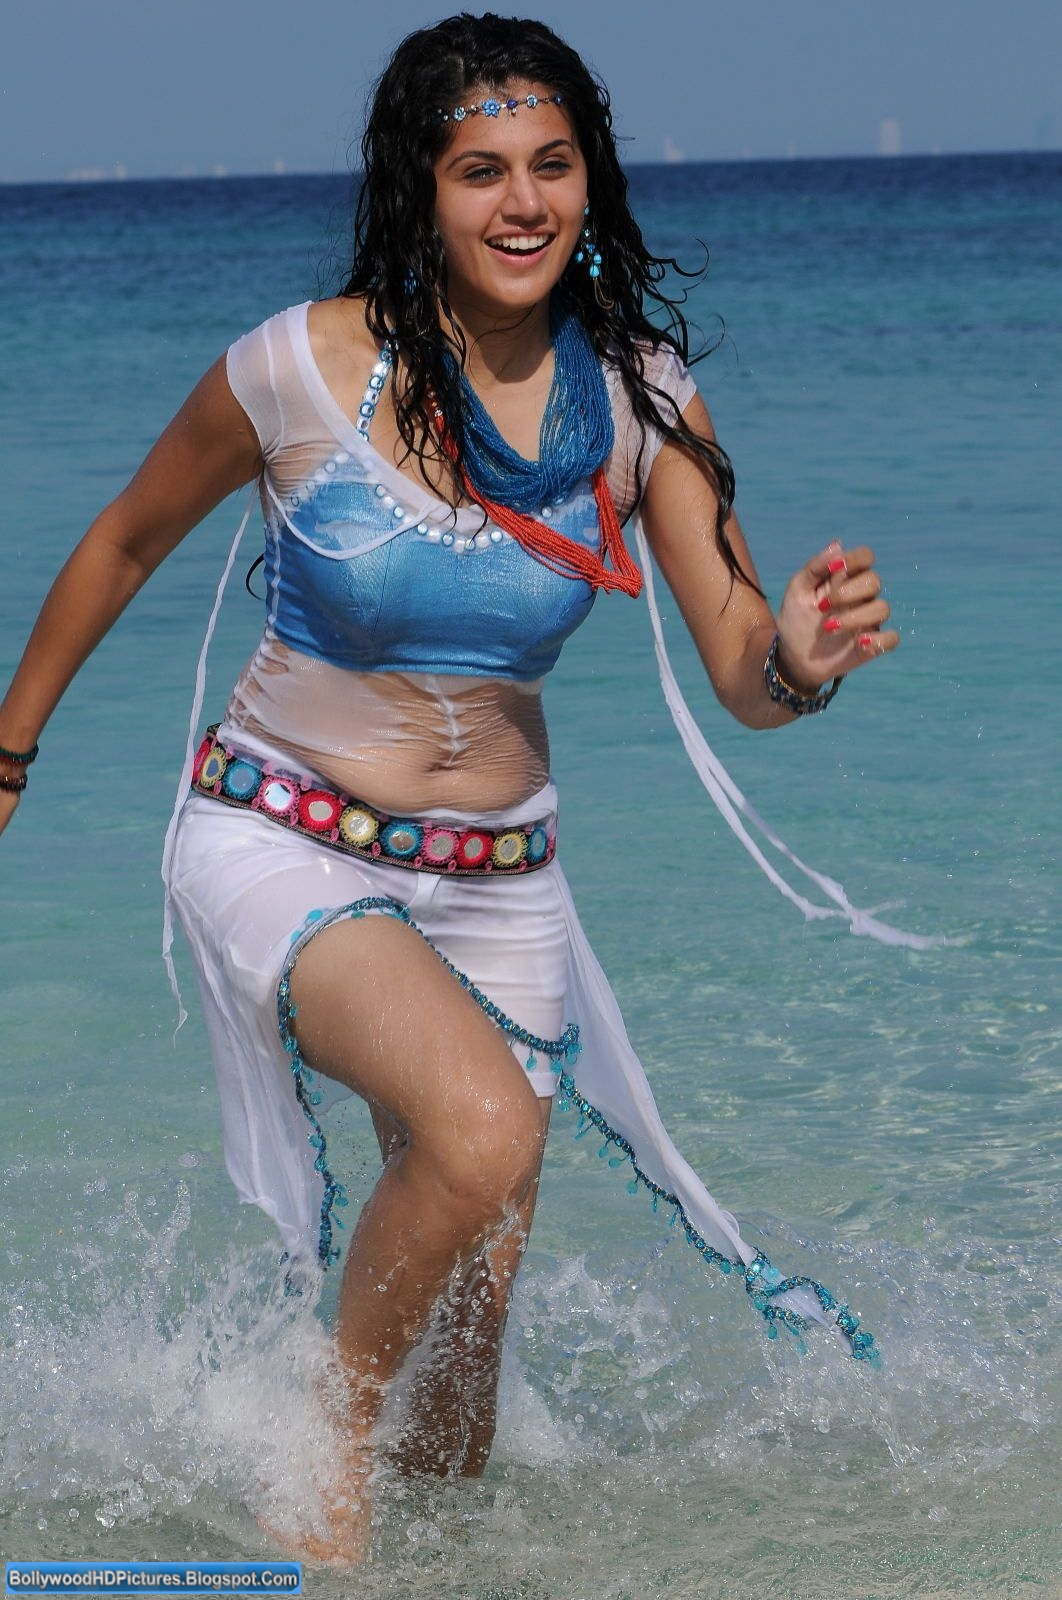 http://1.bp.blogspot.com/-wffzhwGtq0o/UAE0QALSpaI/AAAAAAAAIi4/3-Rcmuxys5g/s1600/Tapsee-Gallery+at+bollywoodhdpictures.blogspot.com+(2).JPG